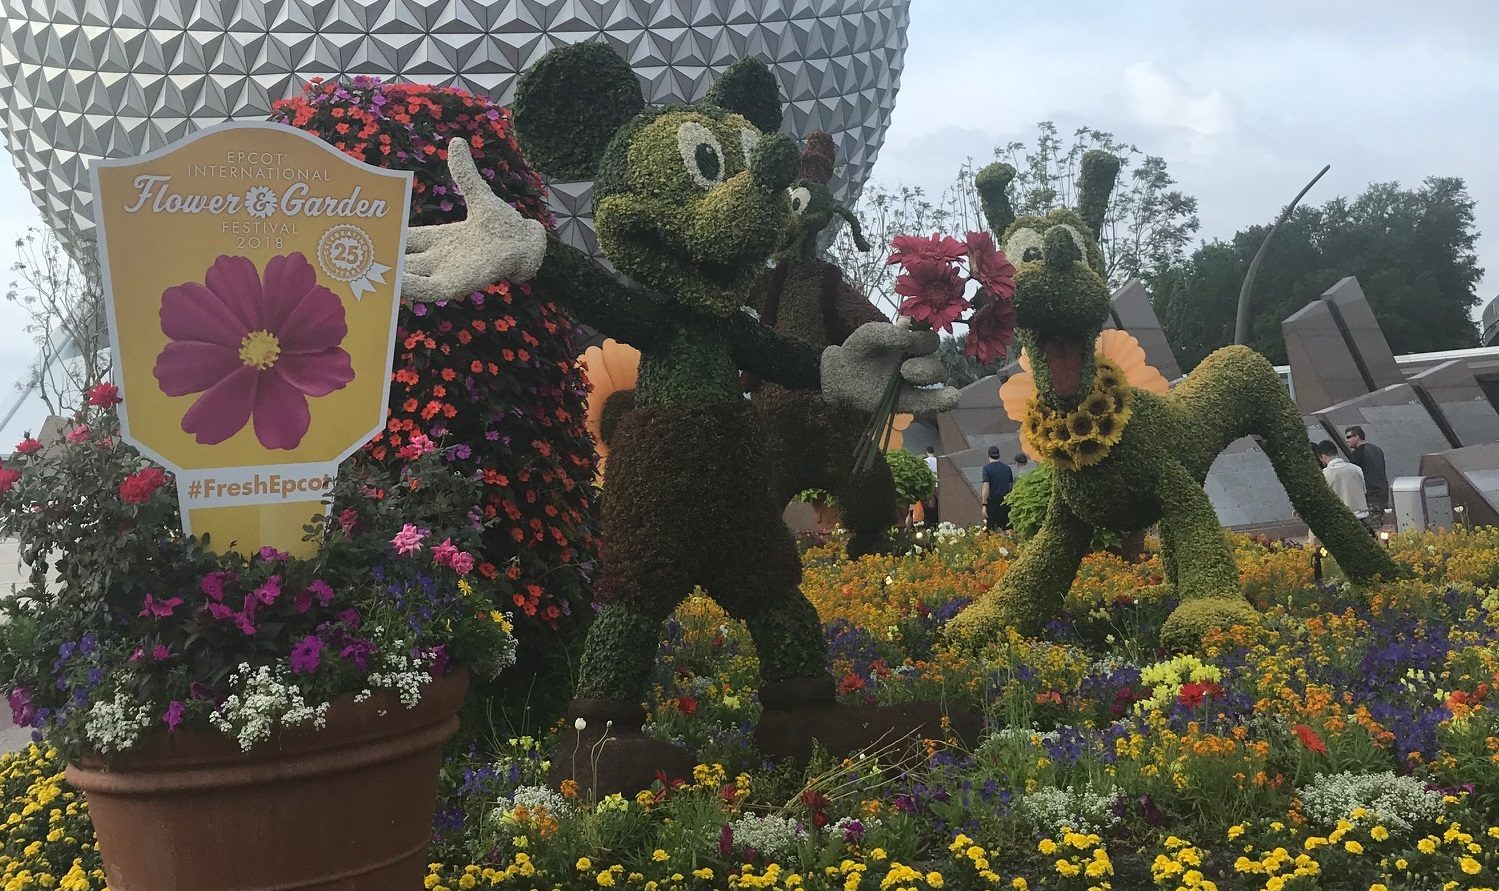 Expanded concert lineup coming to epcot s flower garden - Epcot flower and garden concerts ...